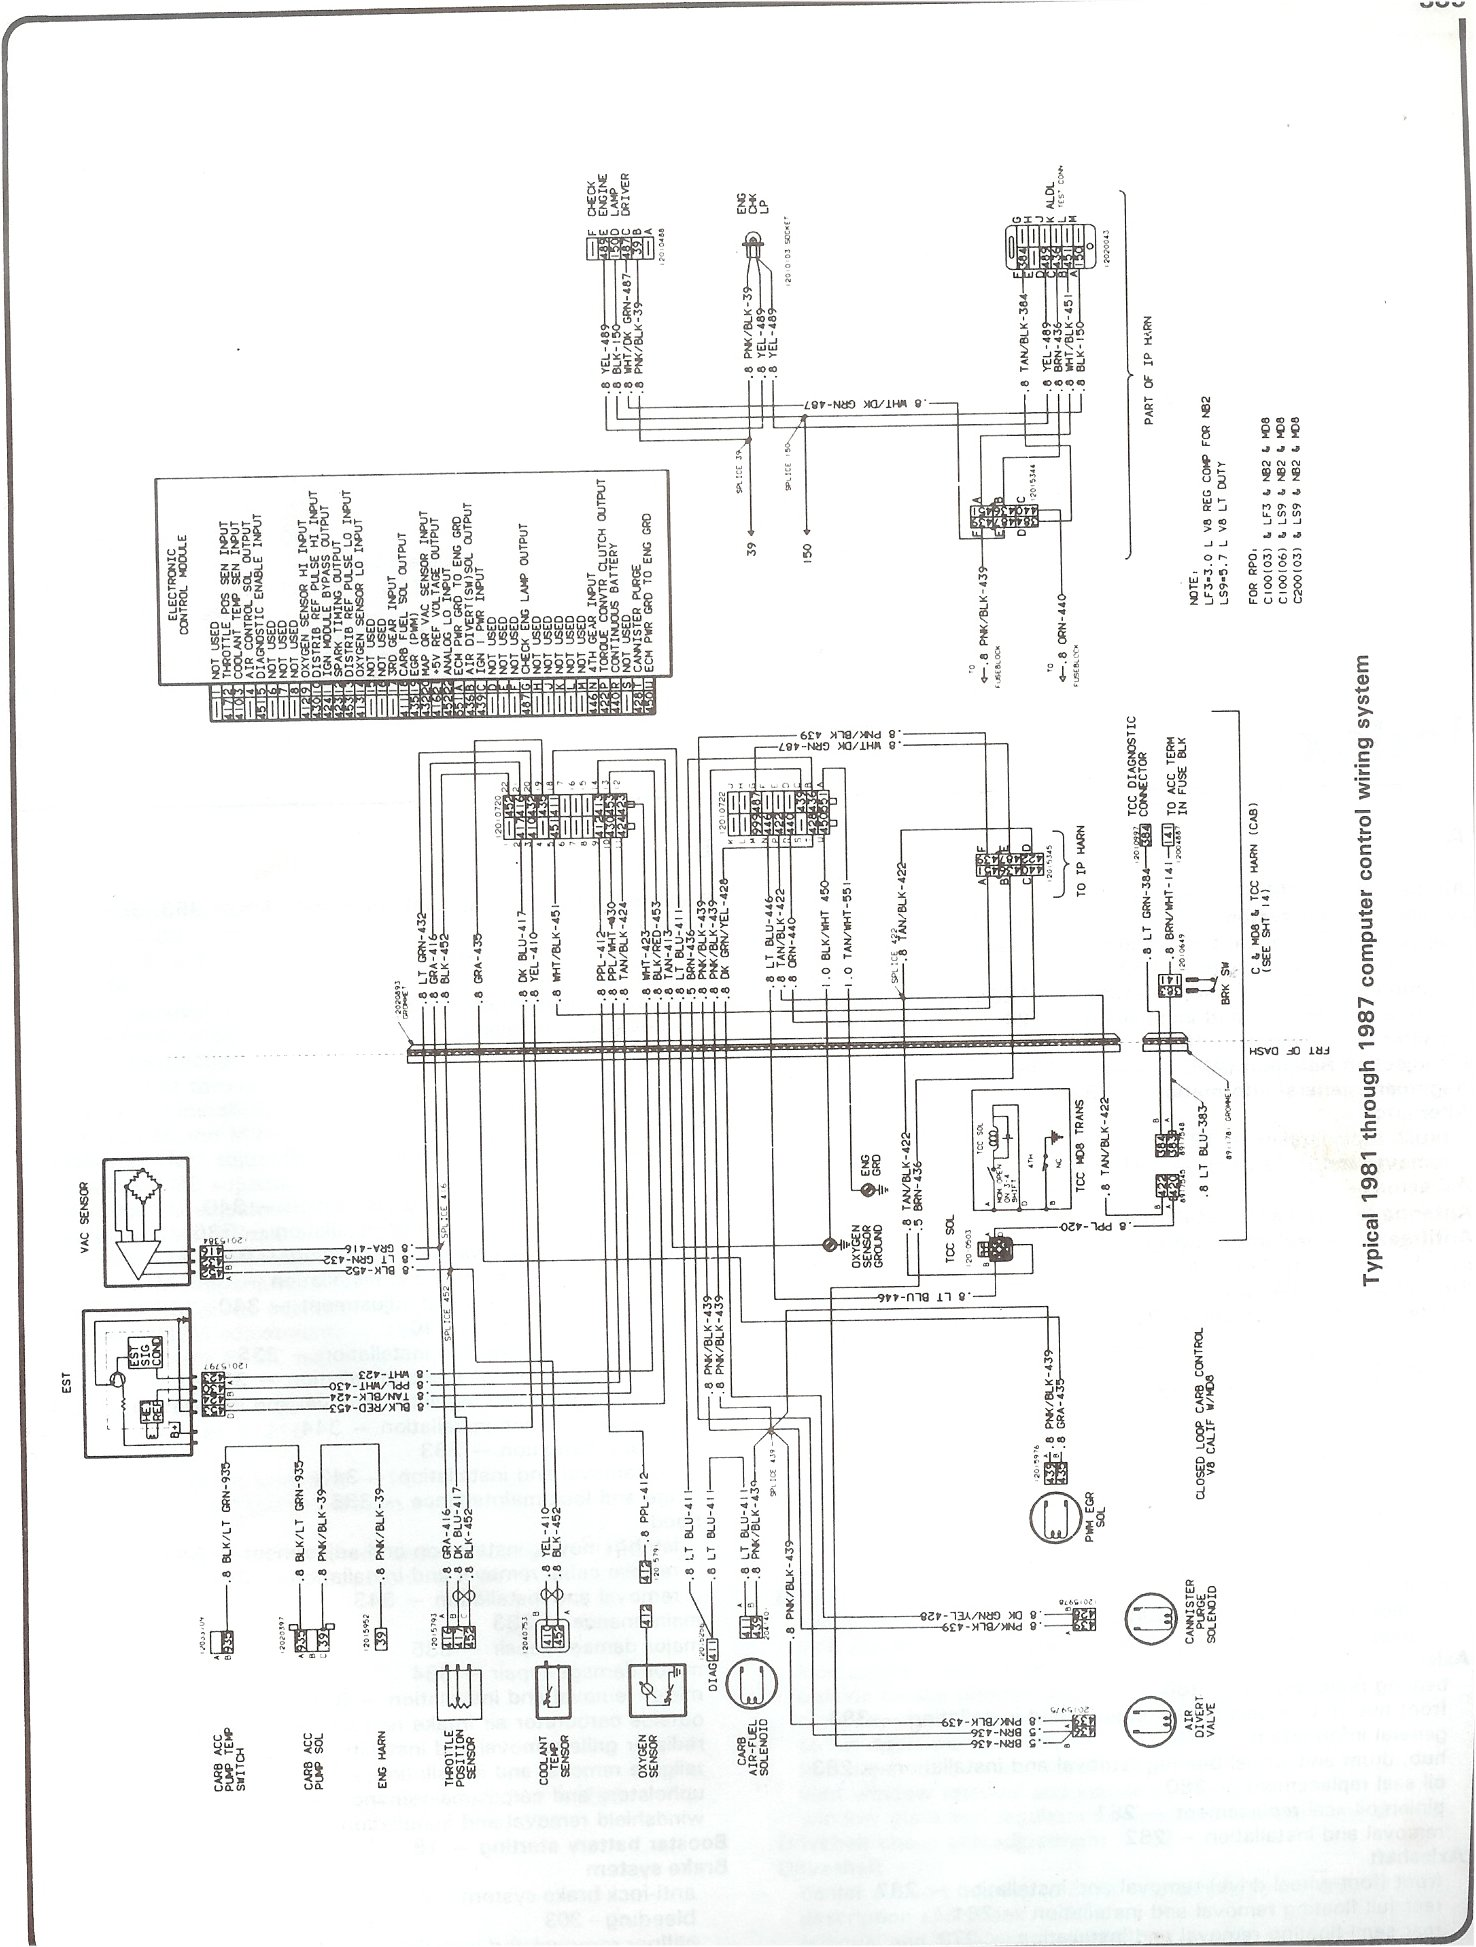 81 87_computer_control_wiring complete 73 87 wiring diagrams chevy s10 wiring harness diagram at mifinder.co